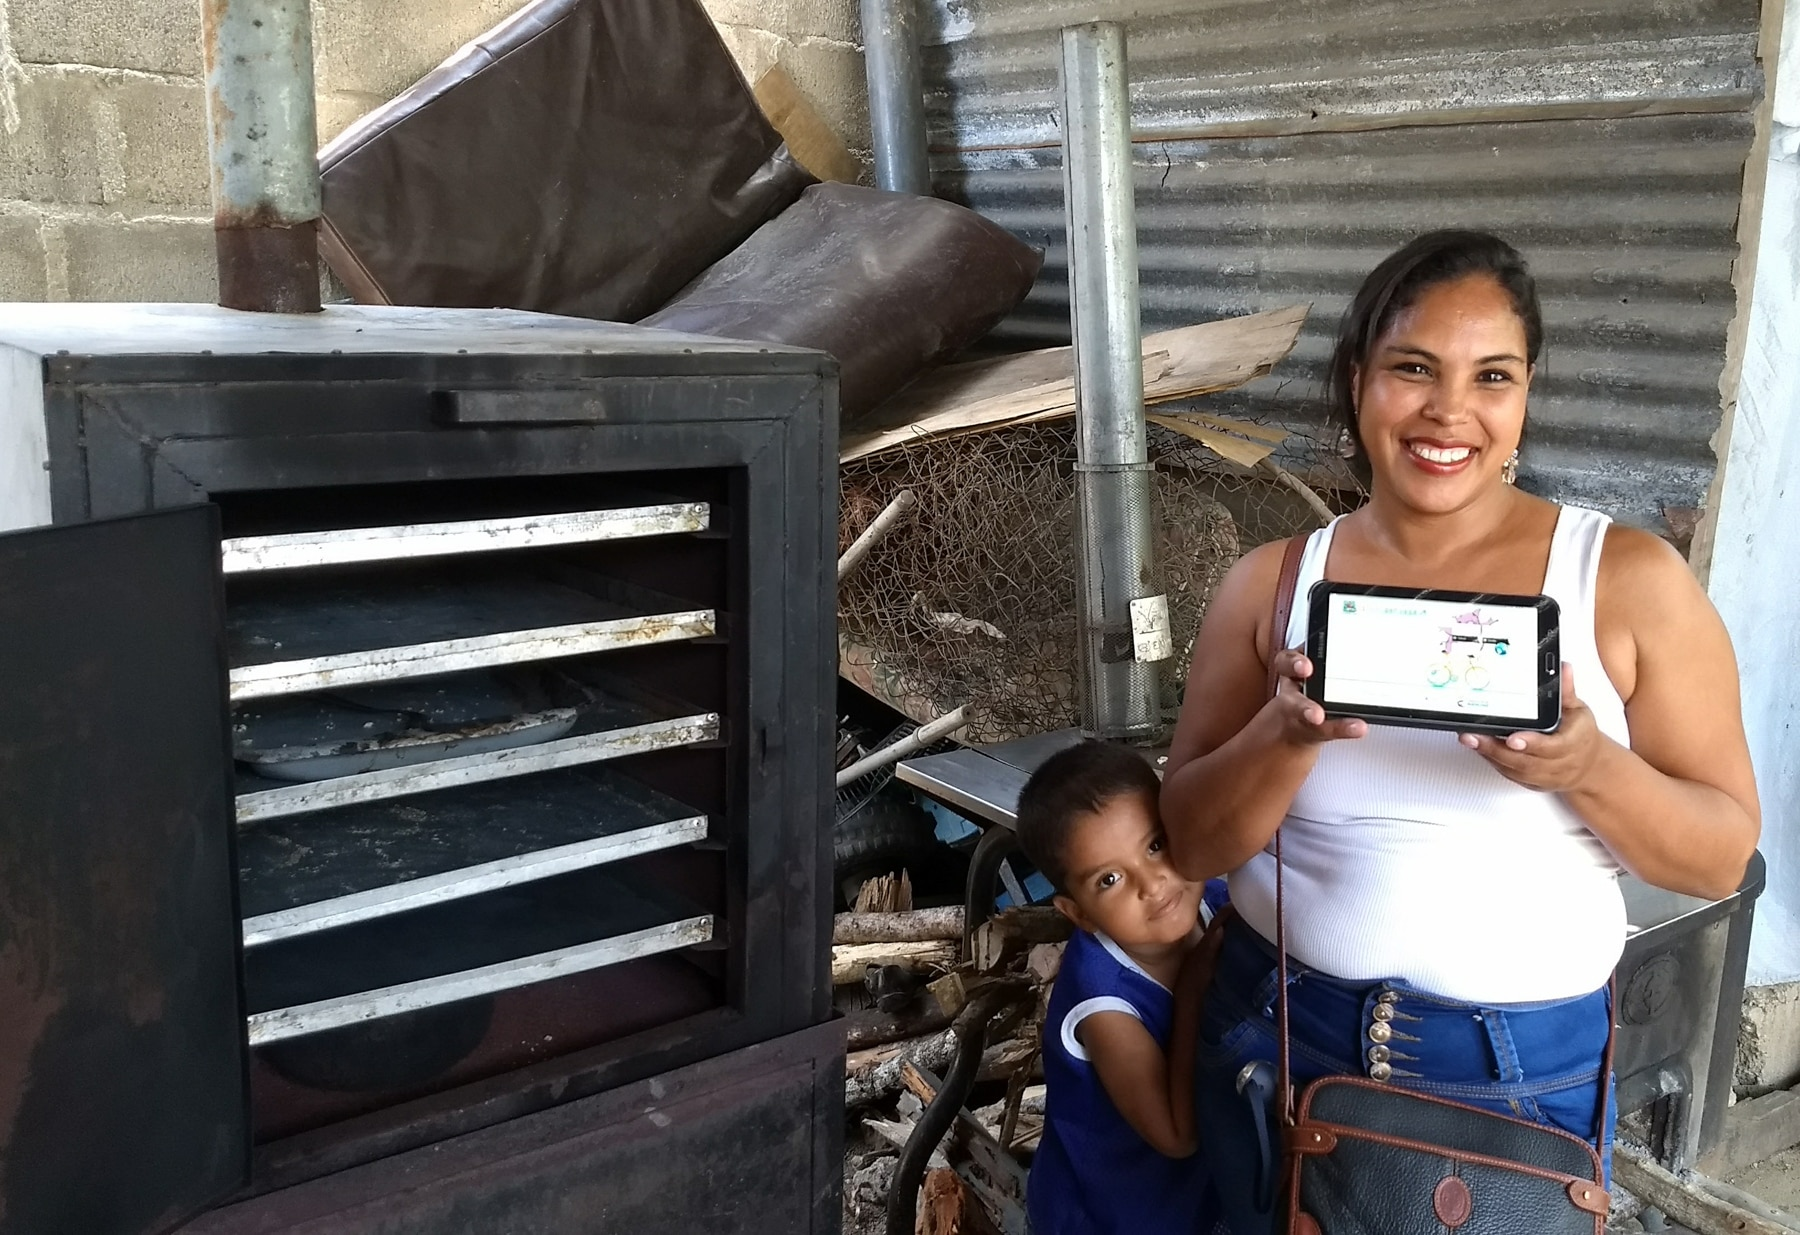 Woman holding electronic tablet and standing next to oven (Fundación Capital)